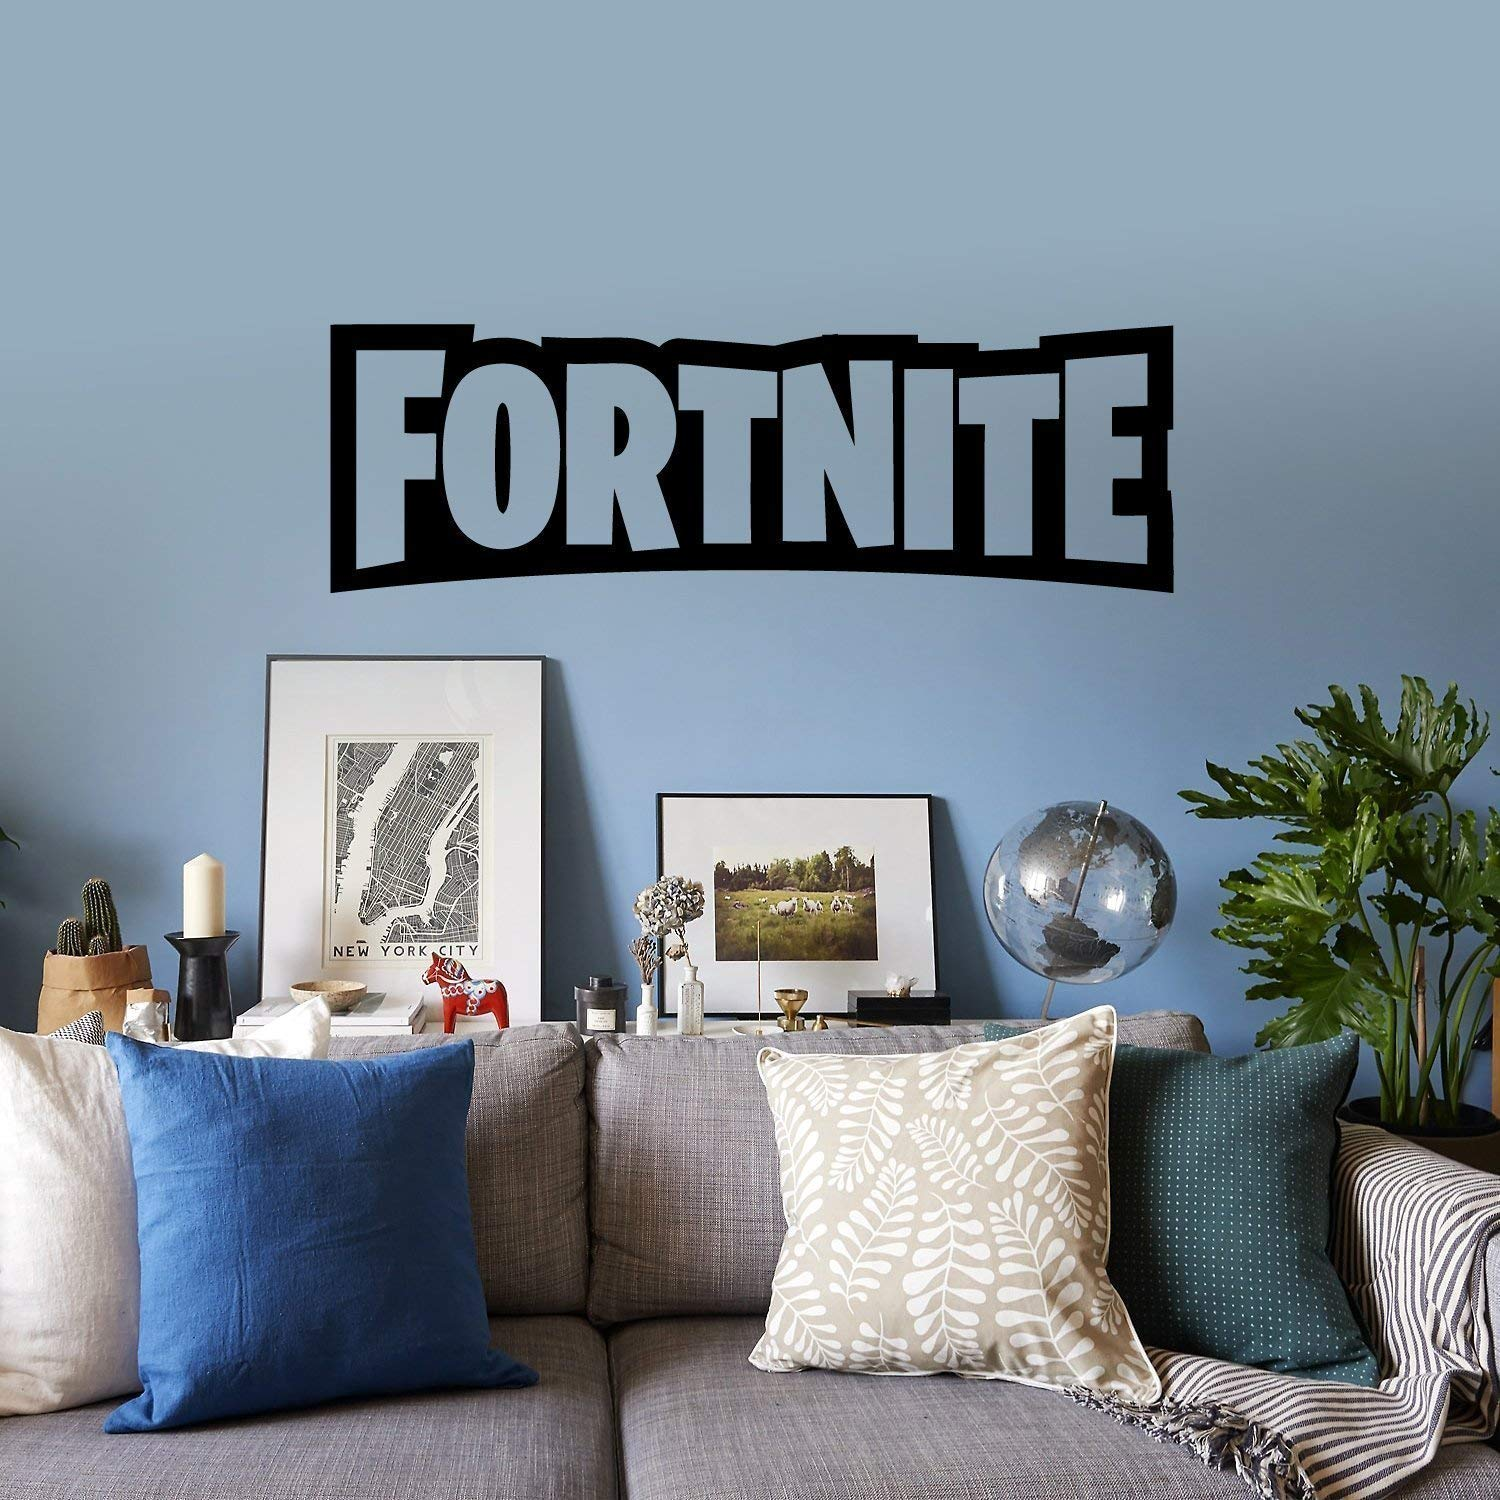 FORTNITE Large Vinyl Sticker/Decal. 23'' or 35'' Black or white. No background.